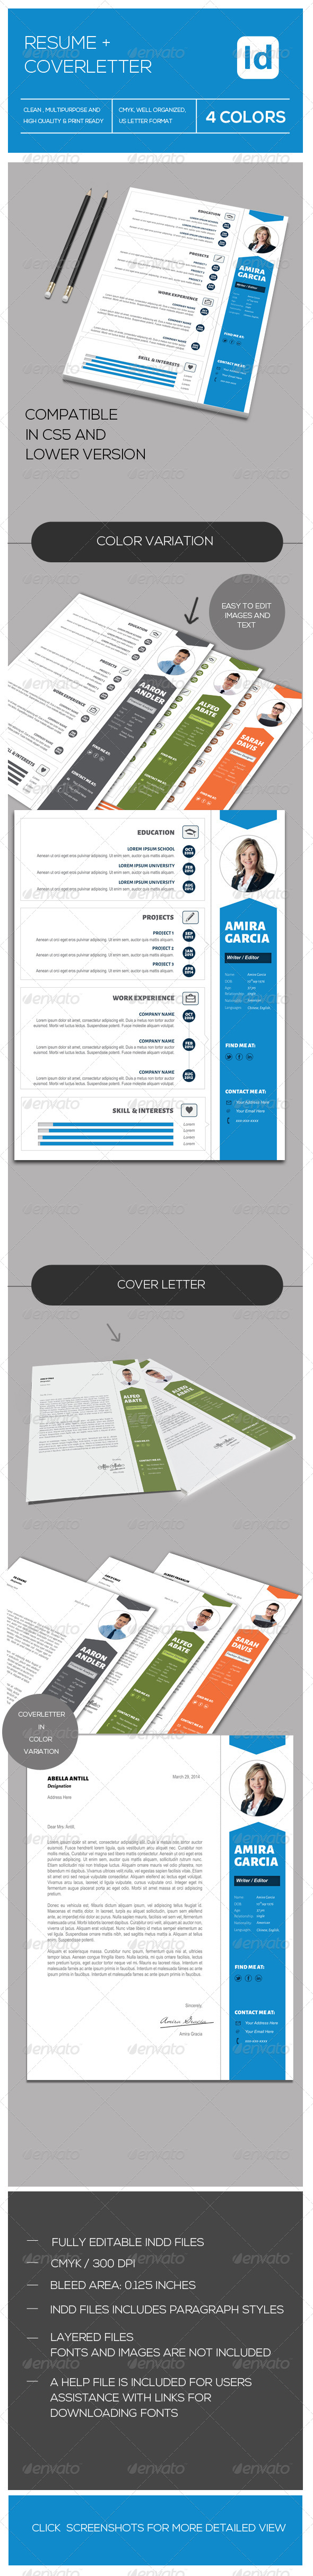 GraphicRiver Resume & Coverletter 7334348